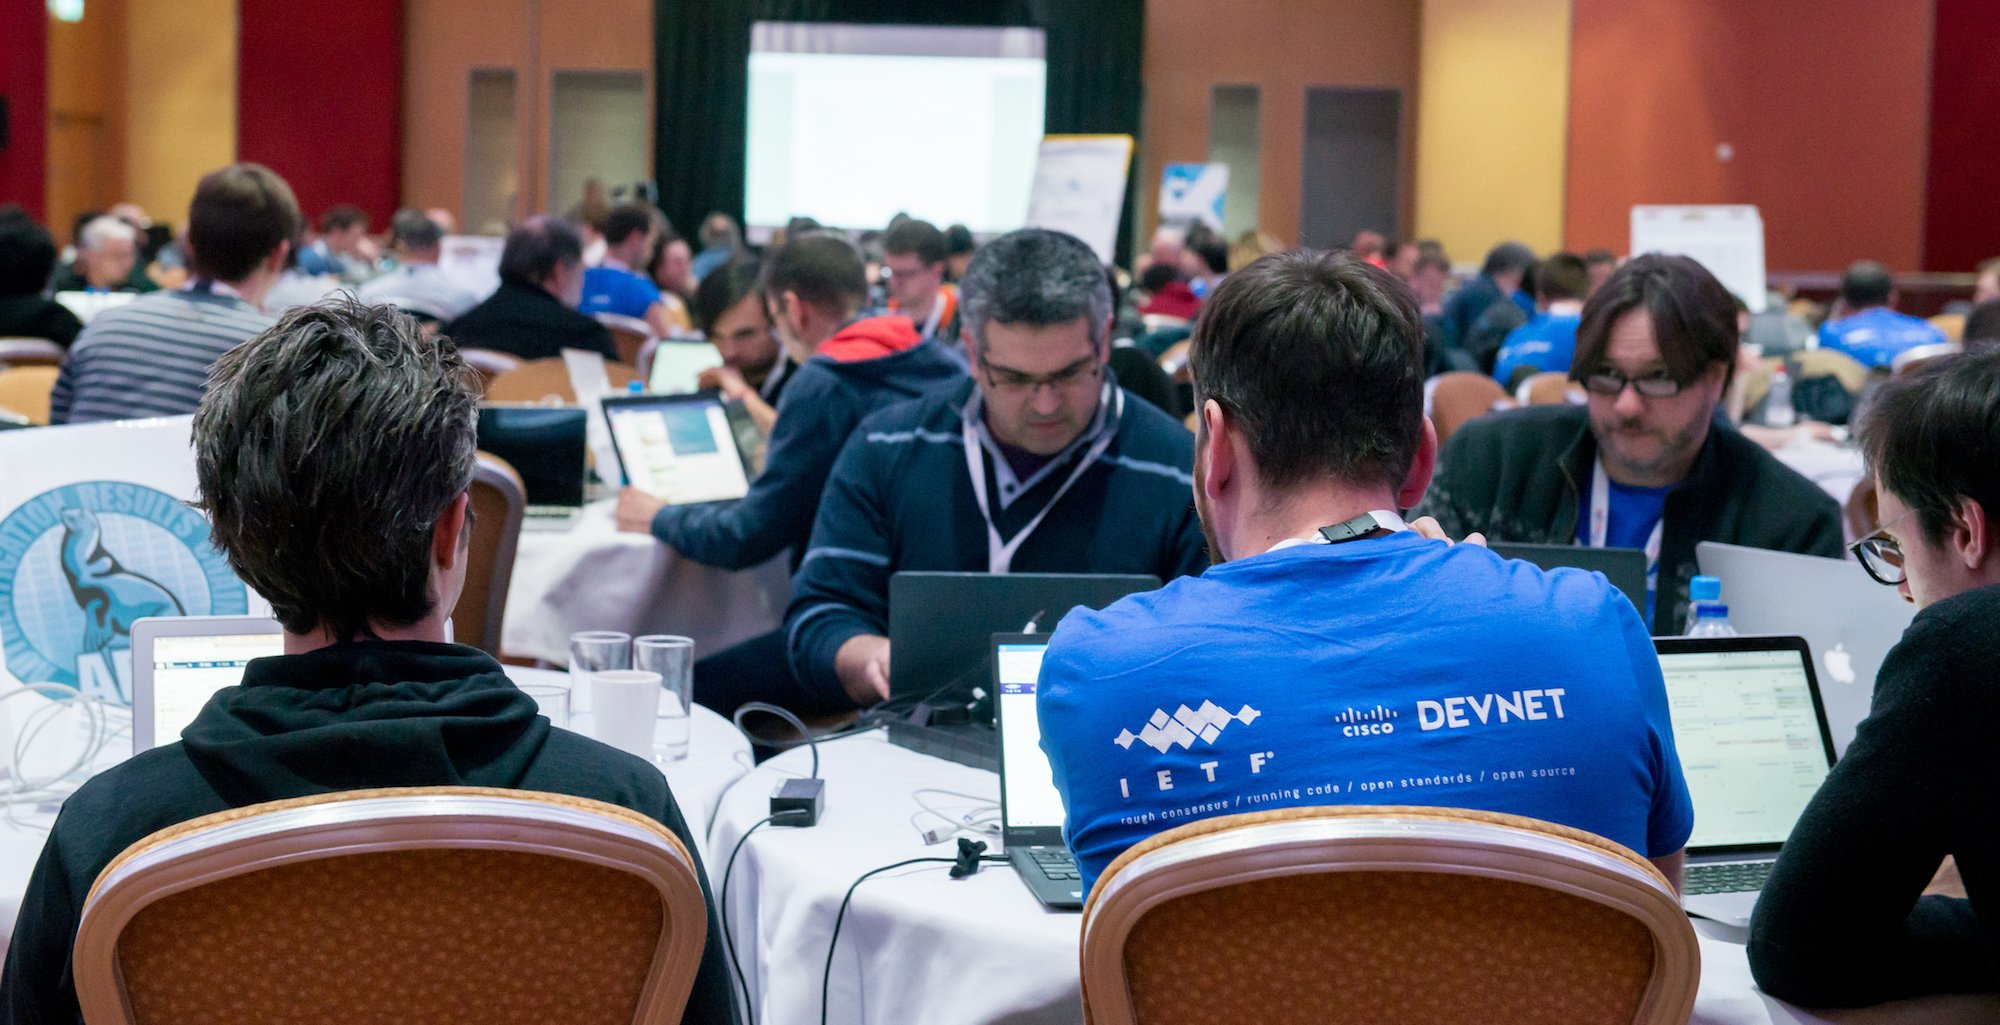 IETF Hackathon in London t-shirt